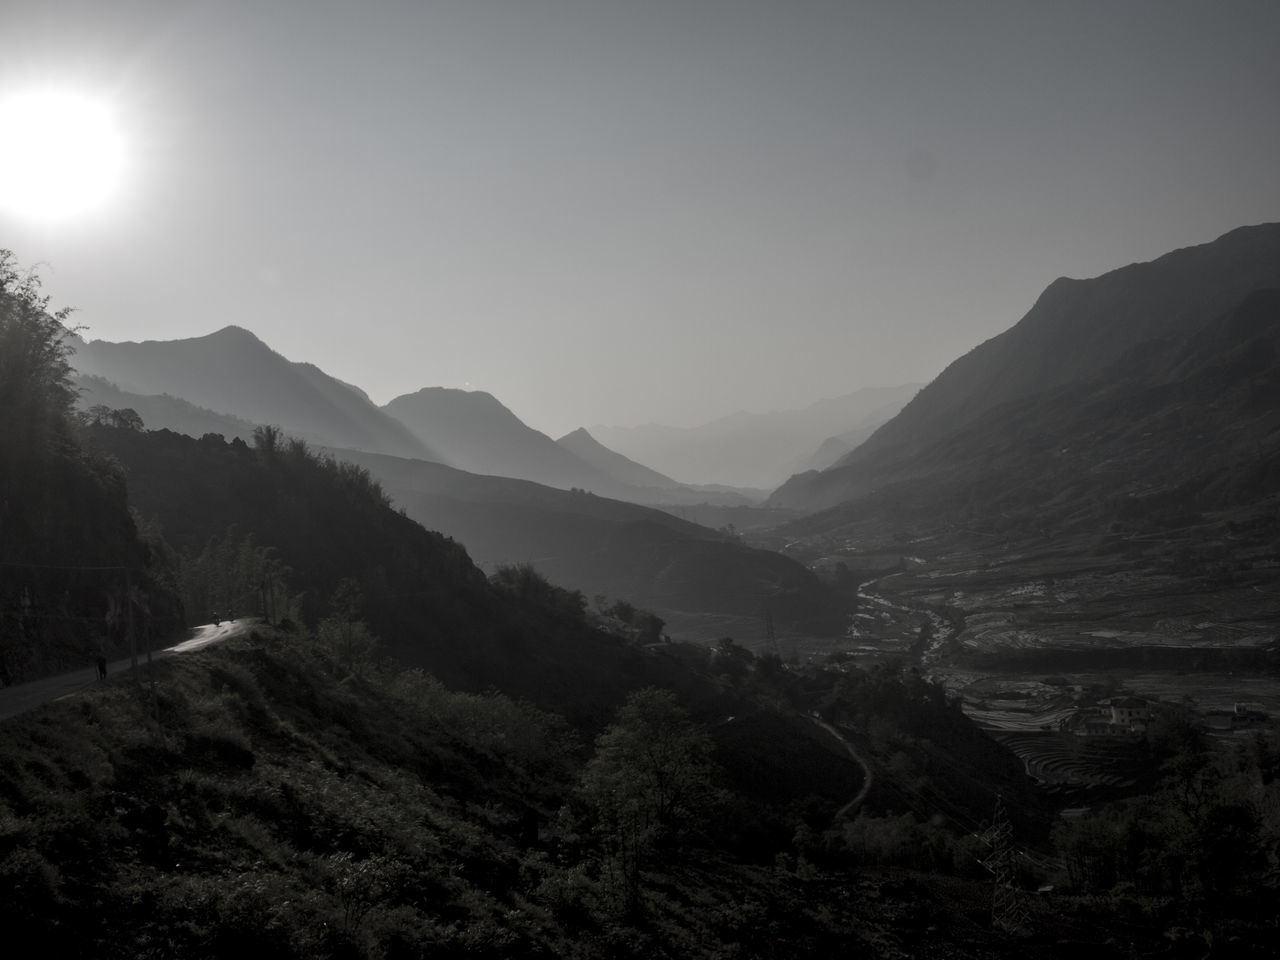 Beautiful landscapes of Sapa, Lao Cai, Vietnam 2015 Beauty In Nature Dreamlike Fog Idyllic Landscape Landscape_Collection Lens Flare Majestic Mist Mountain Mountain Peak Mountain Range Nature Outdoors Remote Sapa Sapa, Vietnam Scenics Sky Solitude Sun Sunbeam Tranquil Scene Tranquility Valley